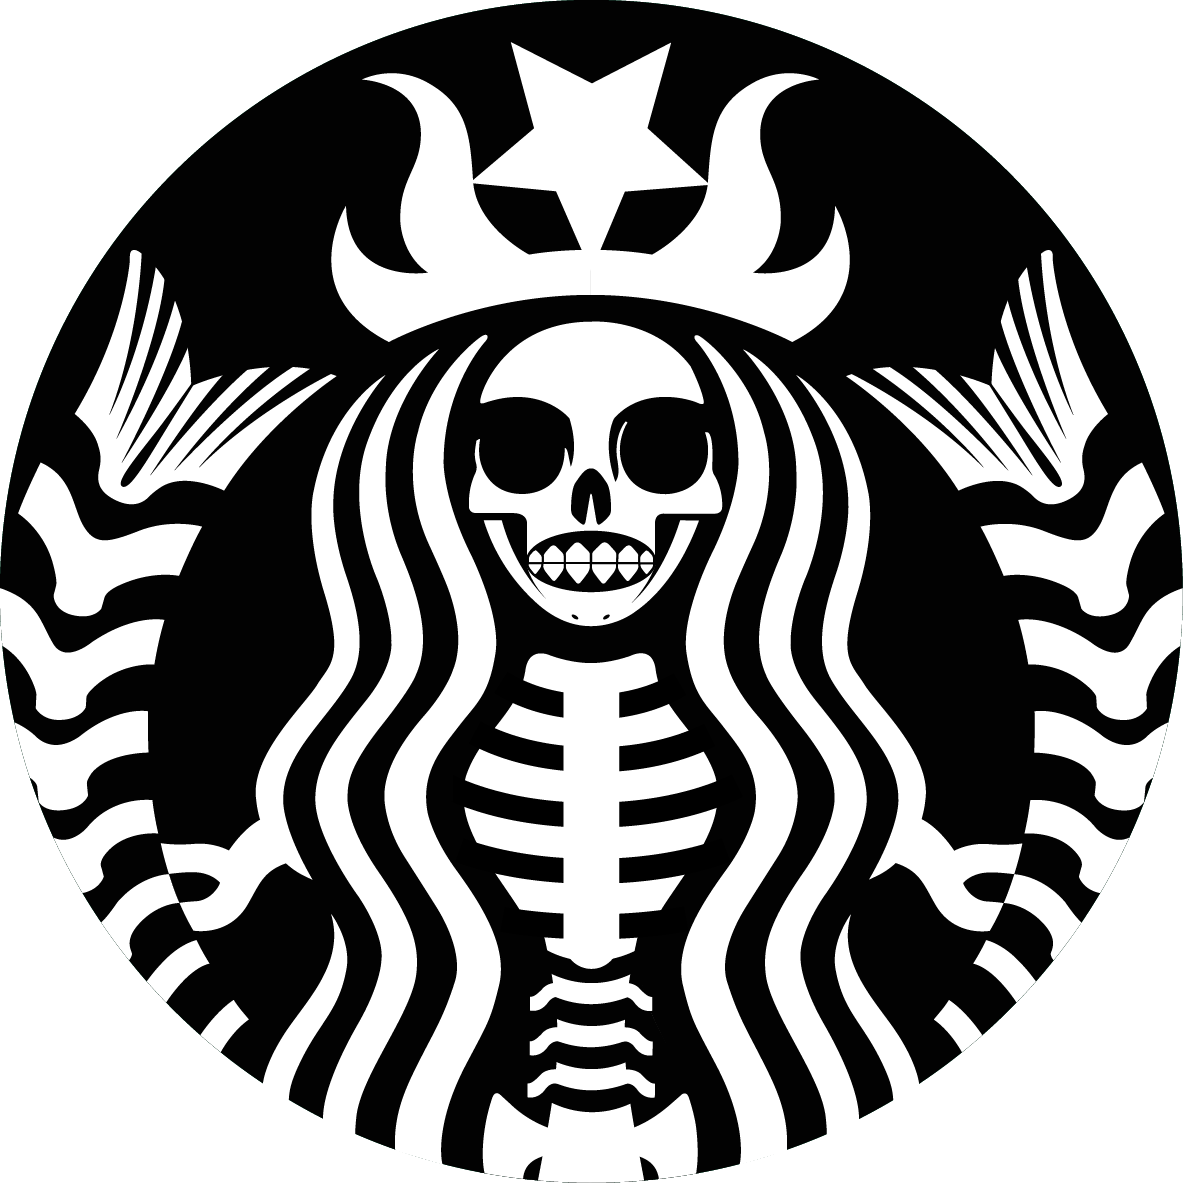 Coffee Skull Espresso Black Starbucks Beans Cafe PNG Image